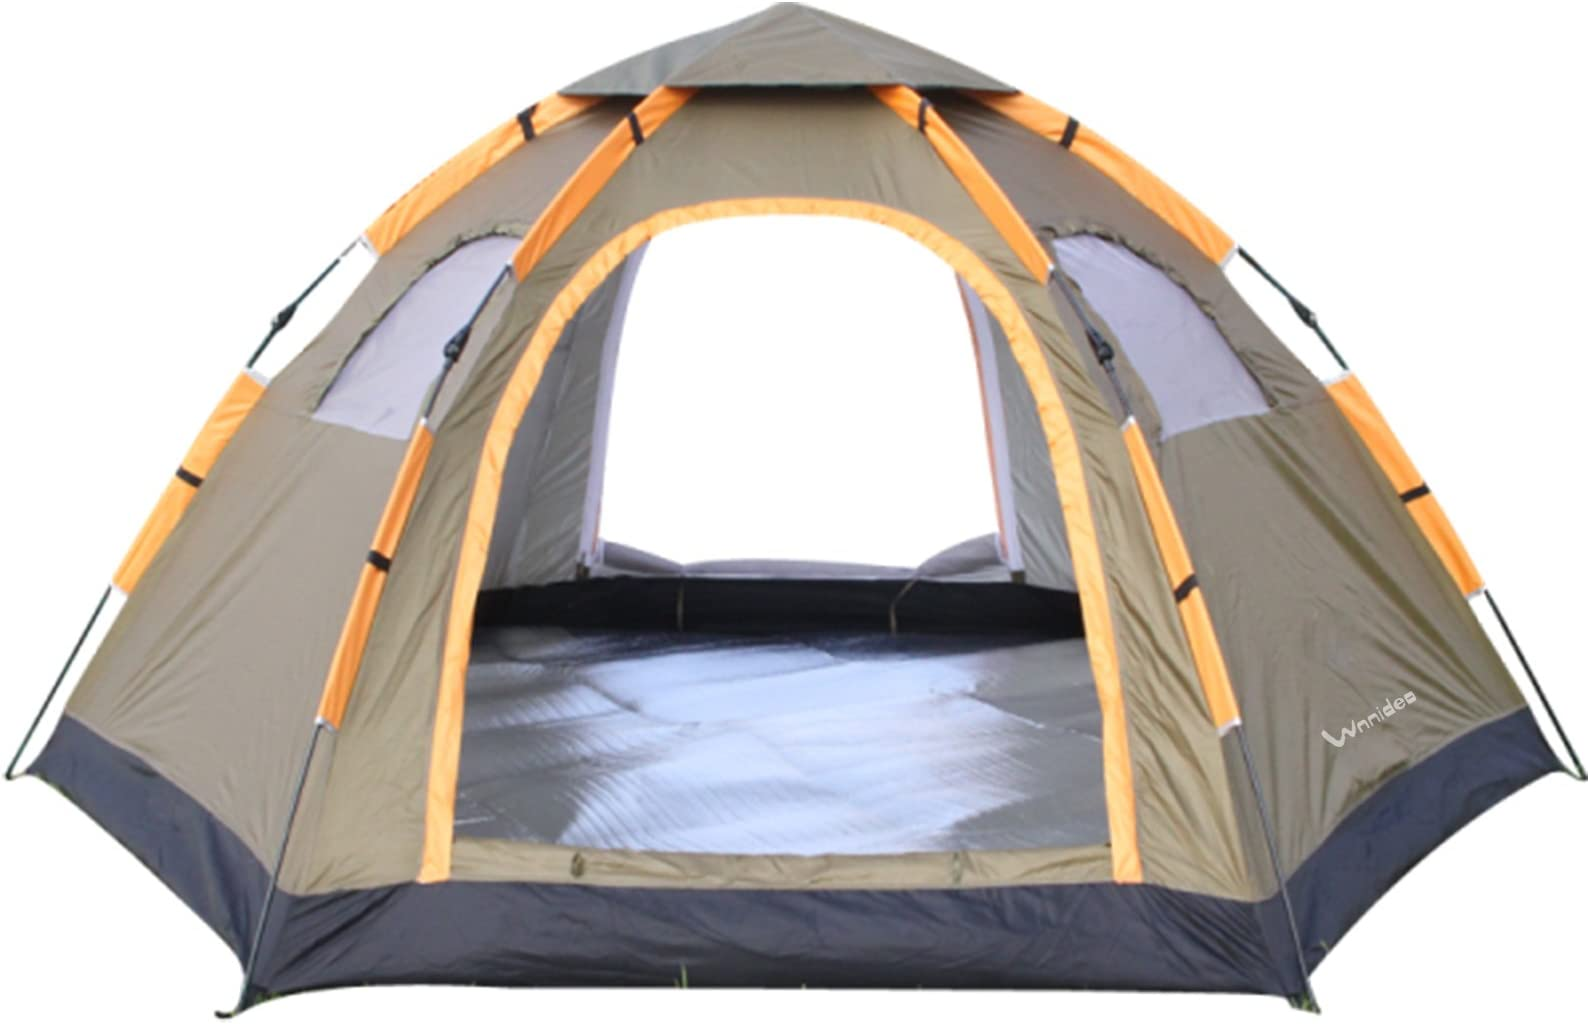 Wnnideo Instant Family Tent 4-5 Person Large Automatic Pop Up Tents Waterproof for Outdoor  sc 1 st  Amazon.com & Family Camping Tents | Amazon.com